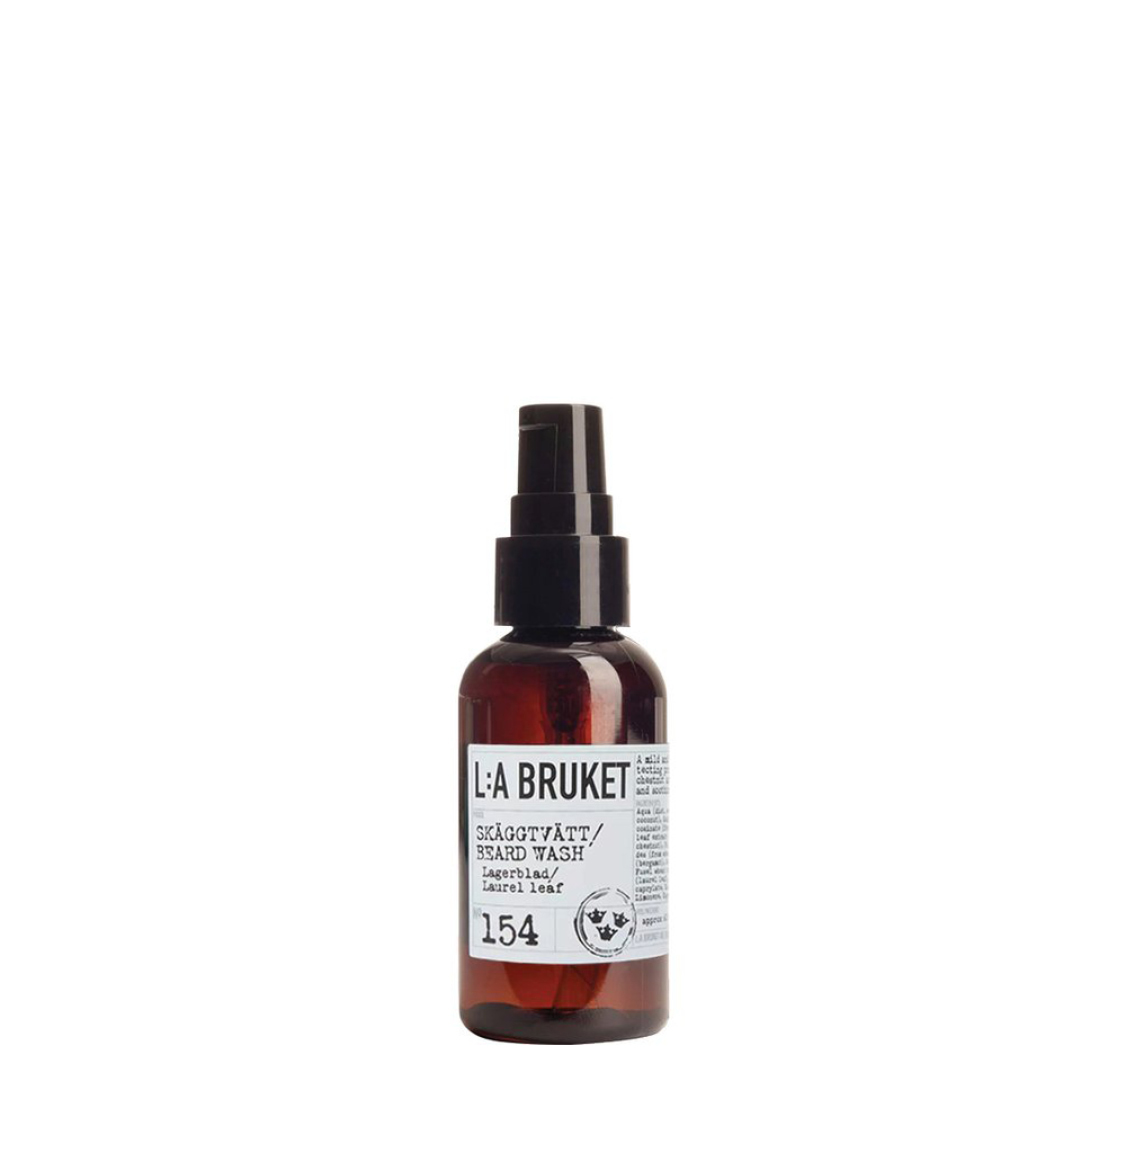 LA Bruket 154 Beard Wash Laurel Leaf 60ml